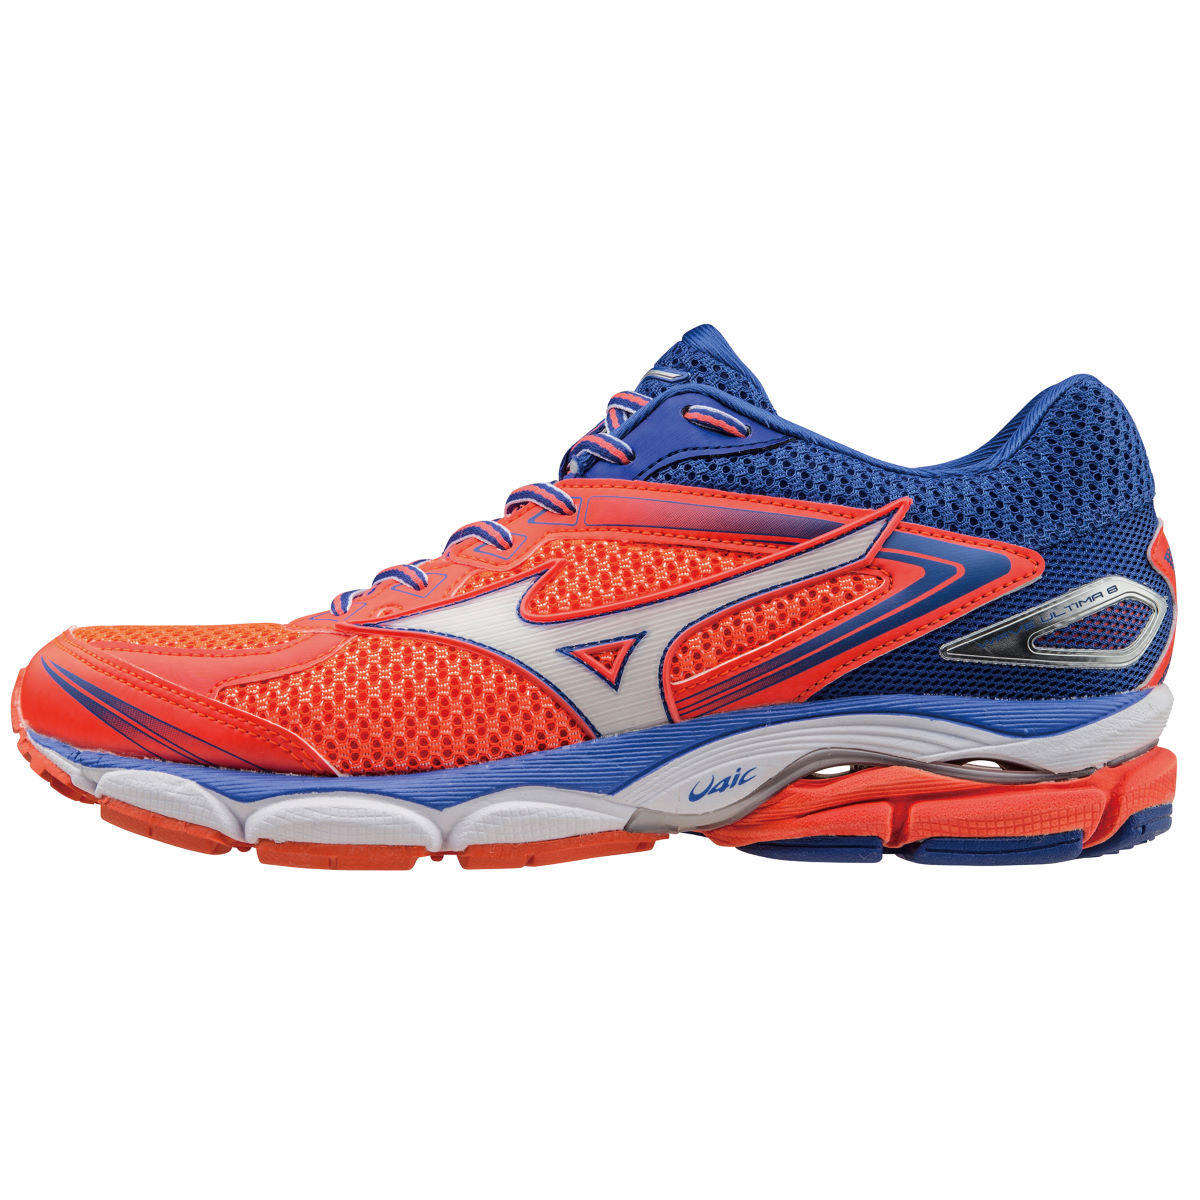 Mizuno Womens Wave Ultima 8 Shoes (AW16)   Cushion Running Shoes